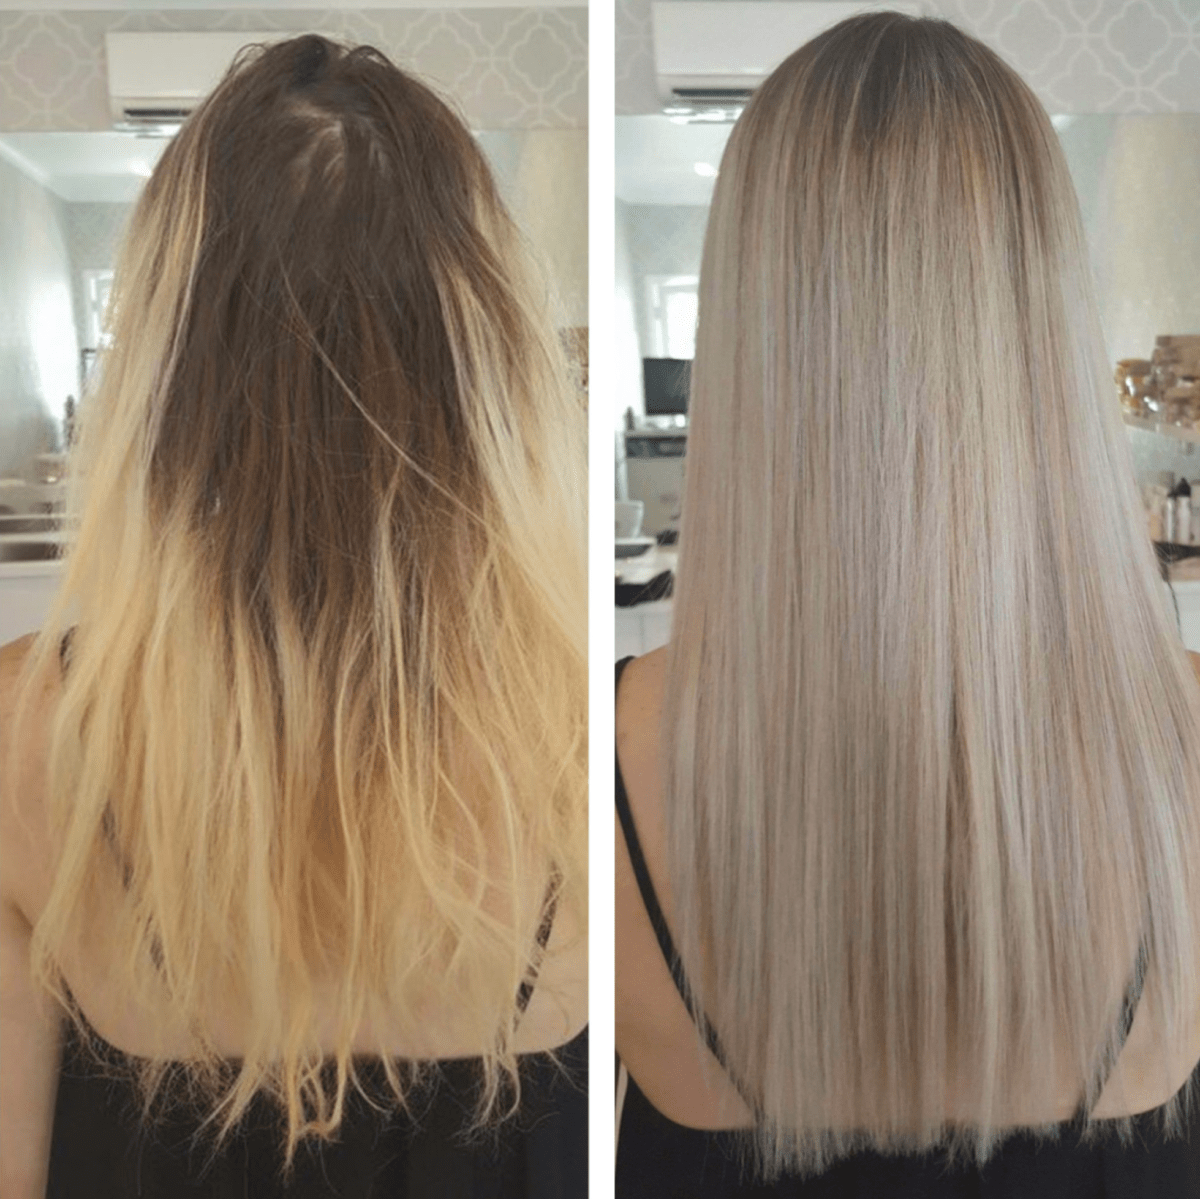 Before and after Balayage – Hair by stylist Sharni.